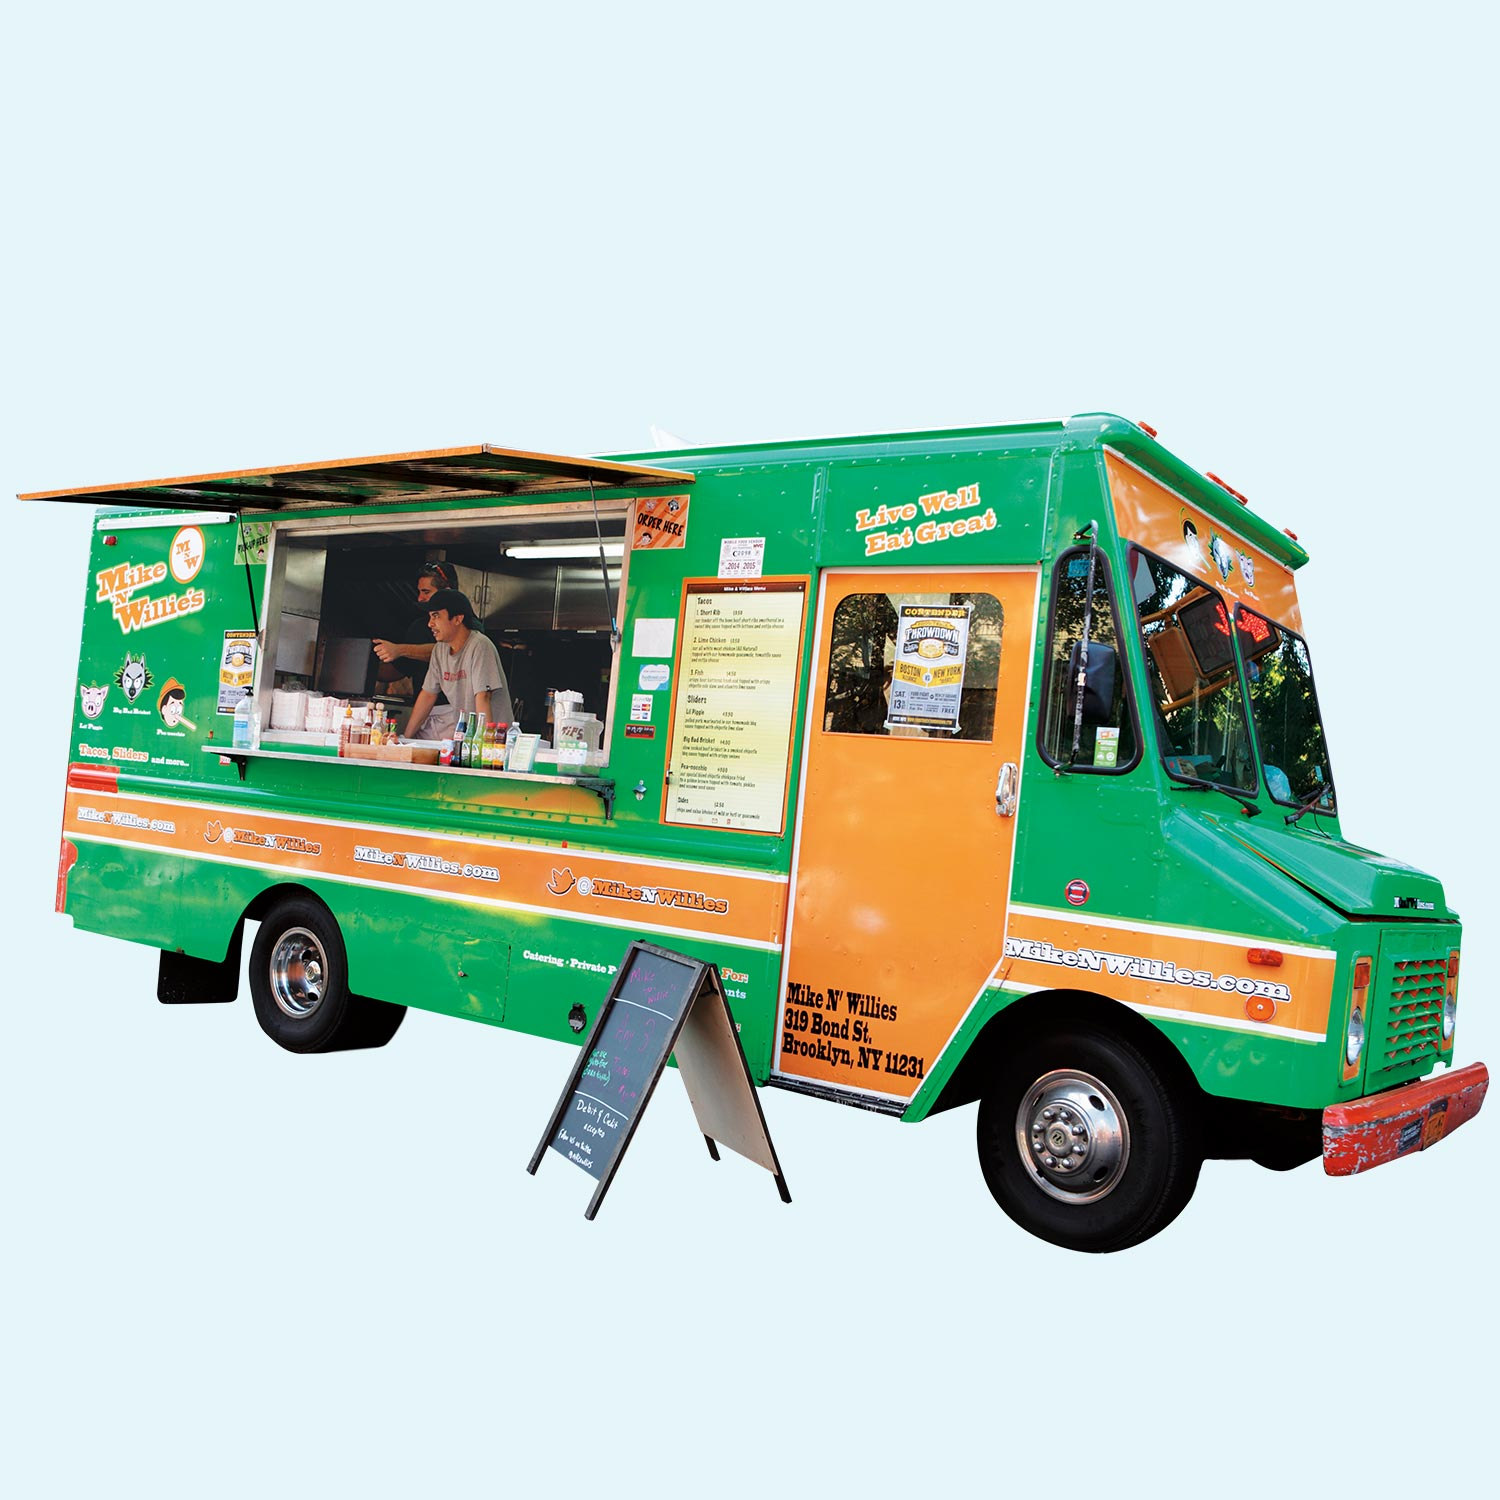 Where S The Optimal Place To Park A Food Truck